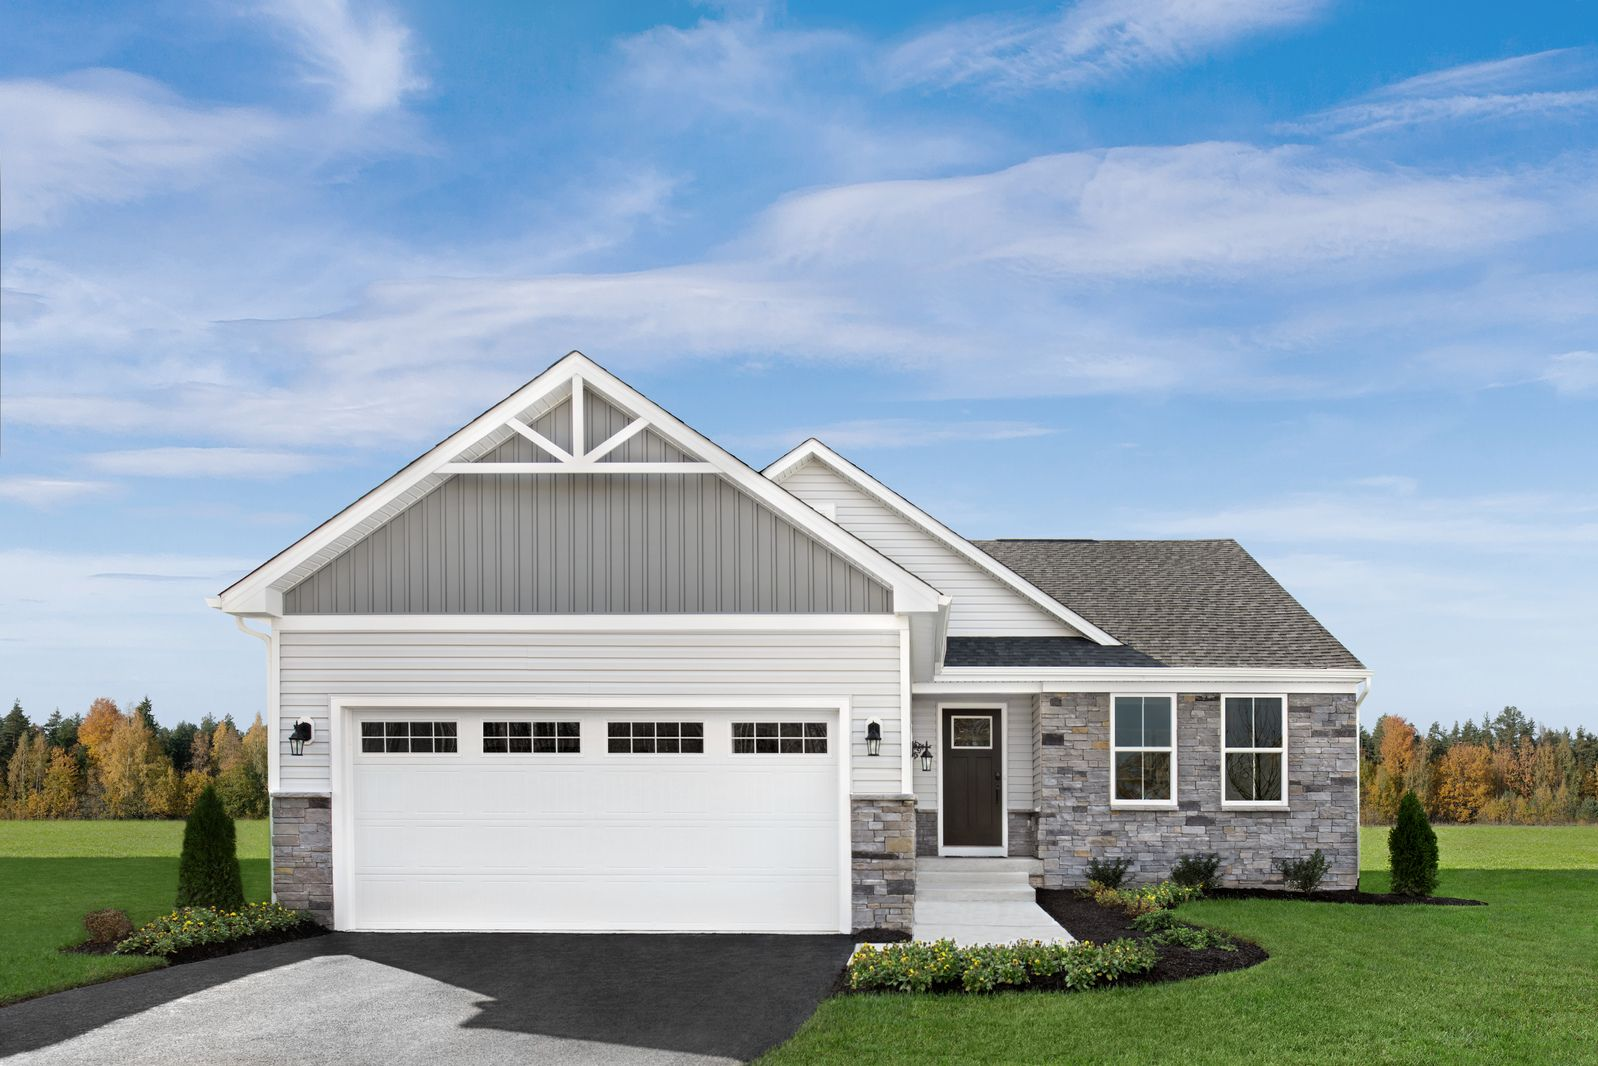 Fields at Oakwood - Now Open!:Maintenance-free, 1-story homes you can personalize the way you want minutes from everyday conveniences.Click here to tour our 4 models here at the community & take advantage of VIP benefits!